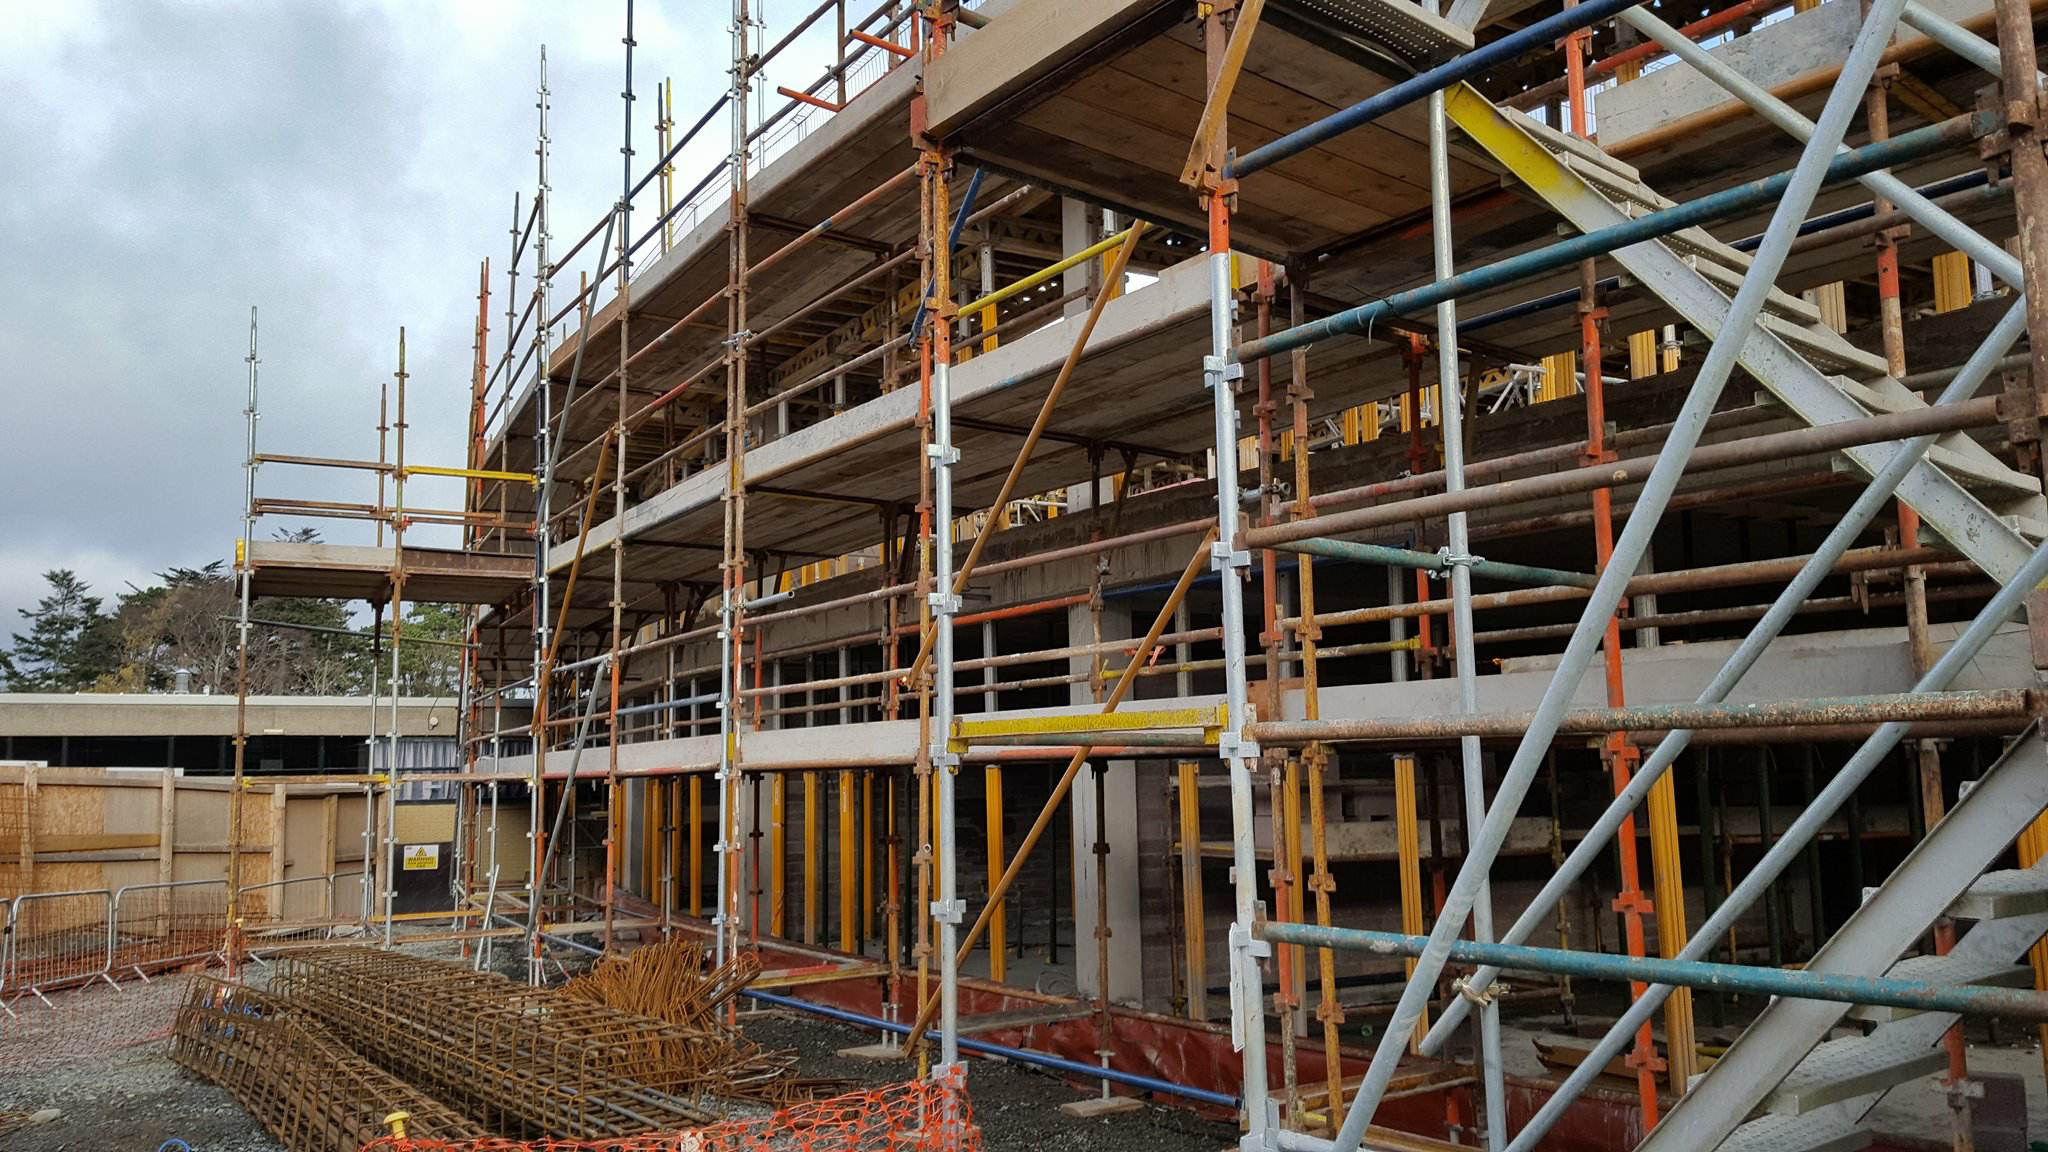 Wesley college dundrum stewart construction job education